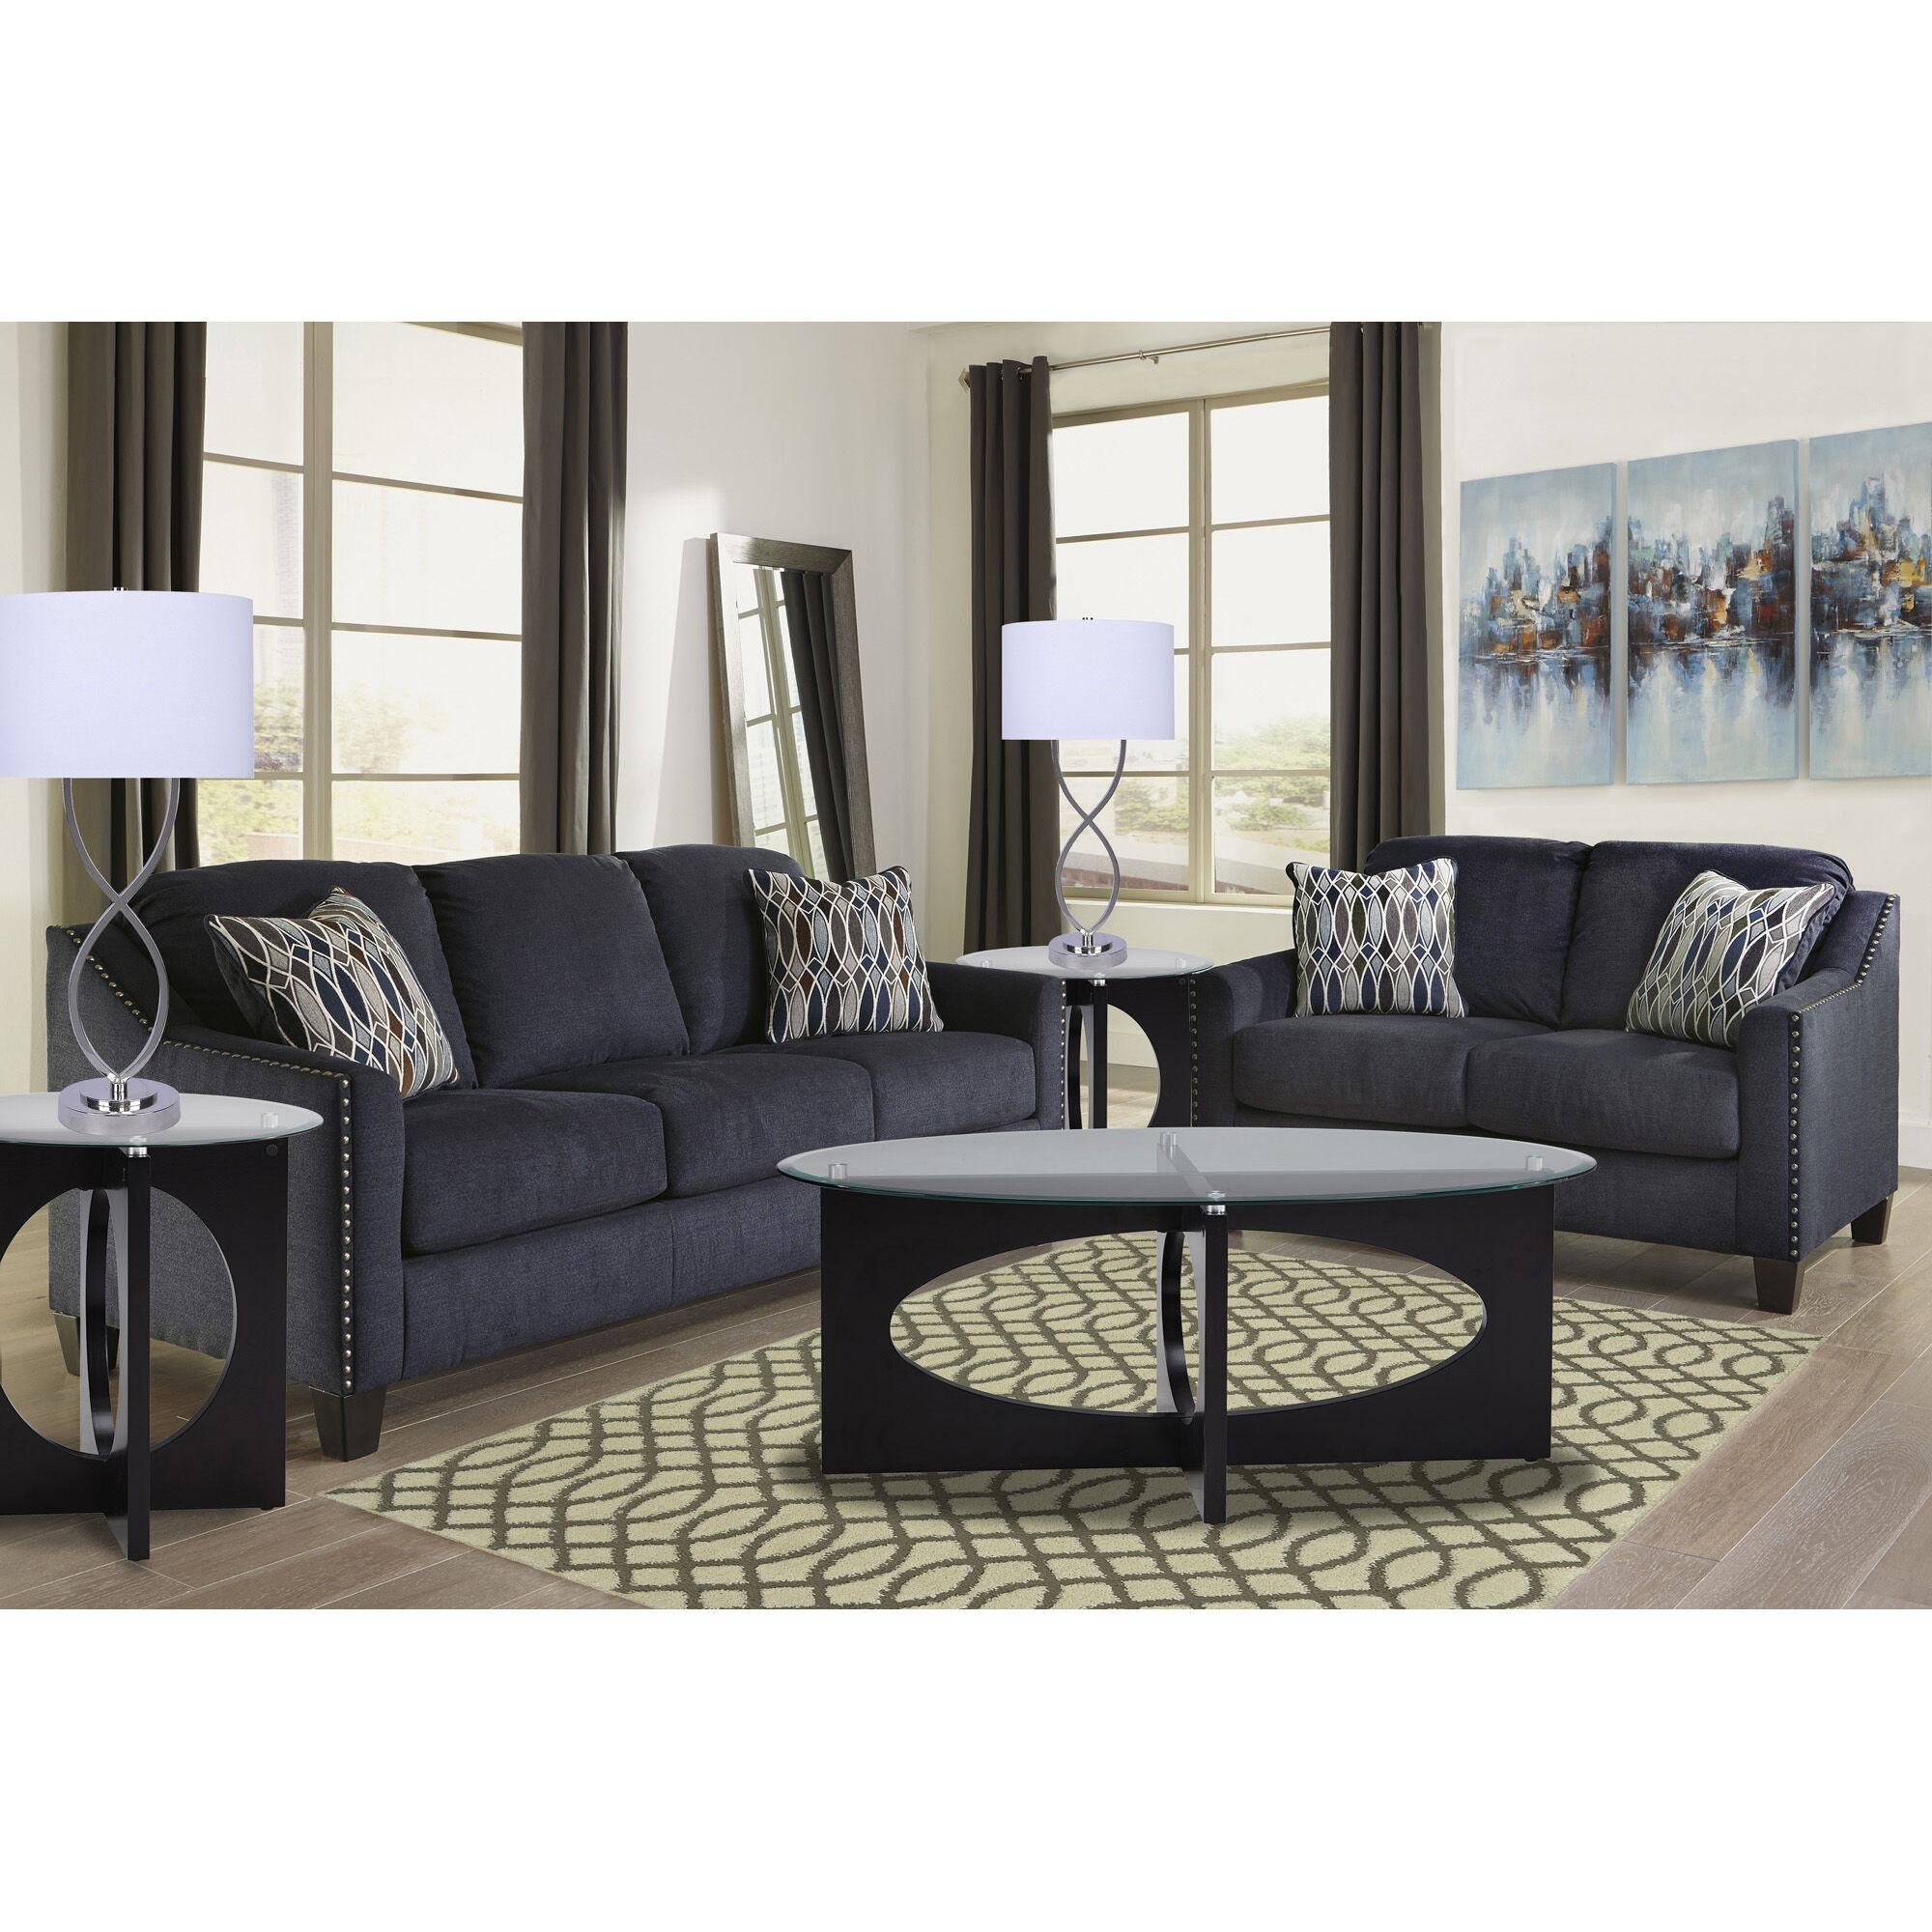 gray furniture in living room house beautiful designs rent to own aaron s 7 piece creeal heights collection